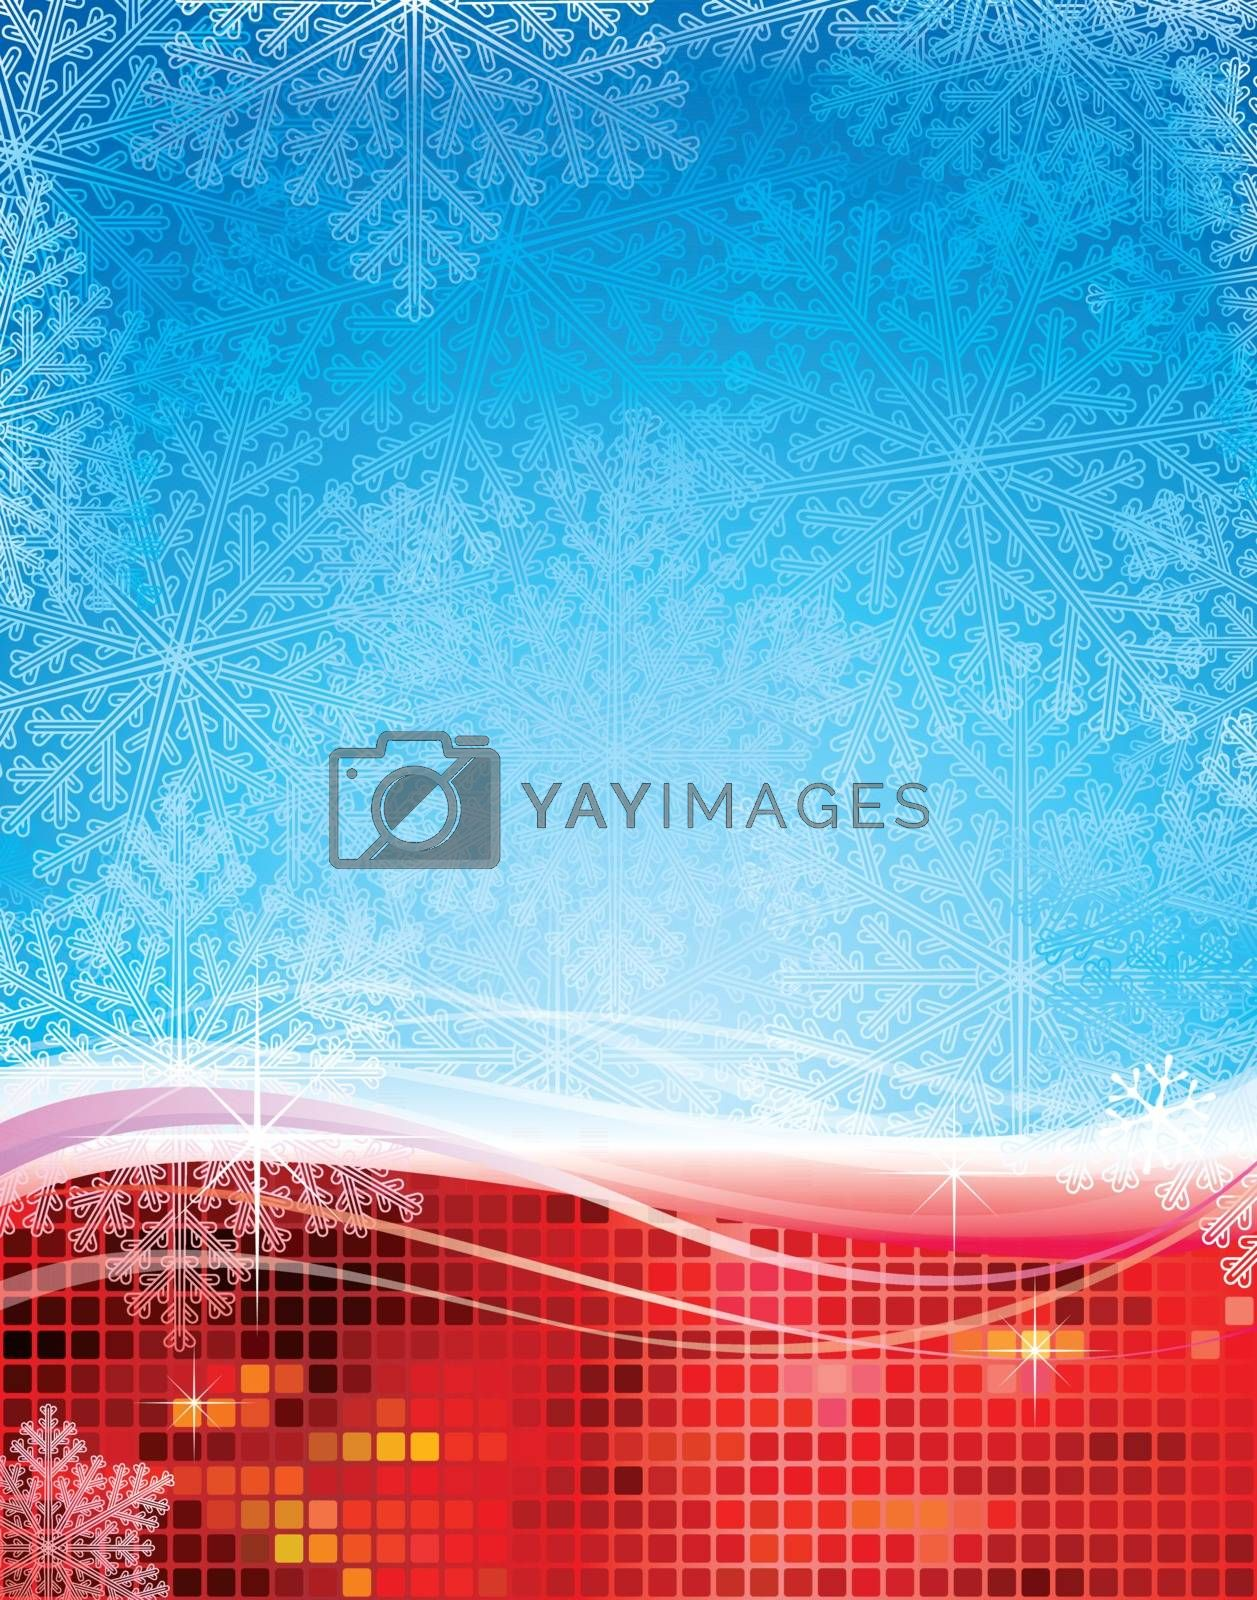 Abstract Christmas snowflakes background design.